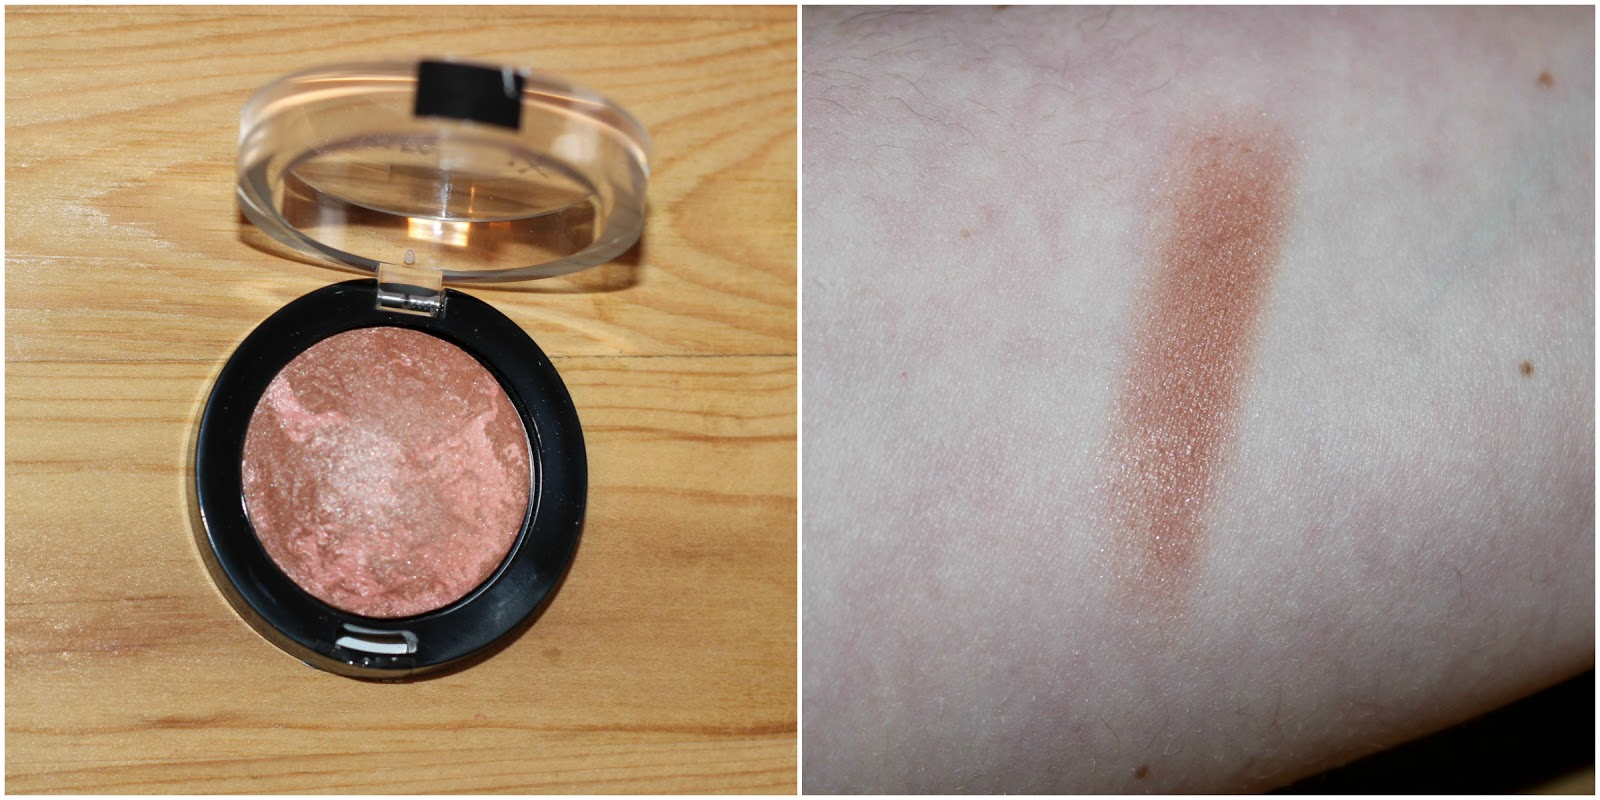 Maxfactor Creme Puff Blush In Alluring Rose Swatch